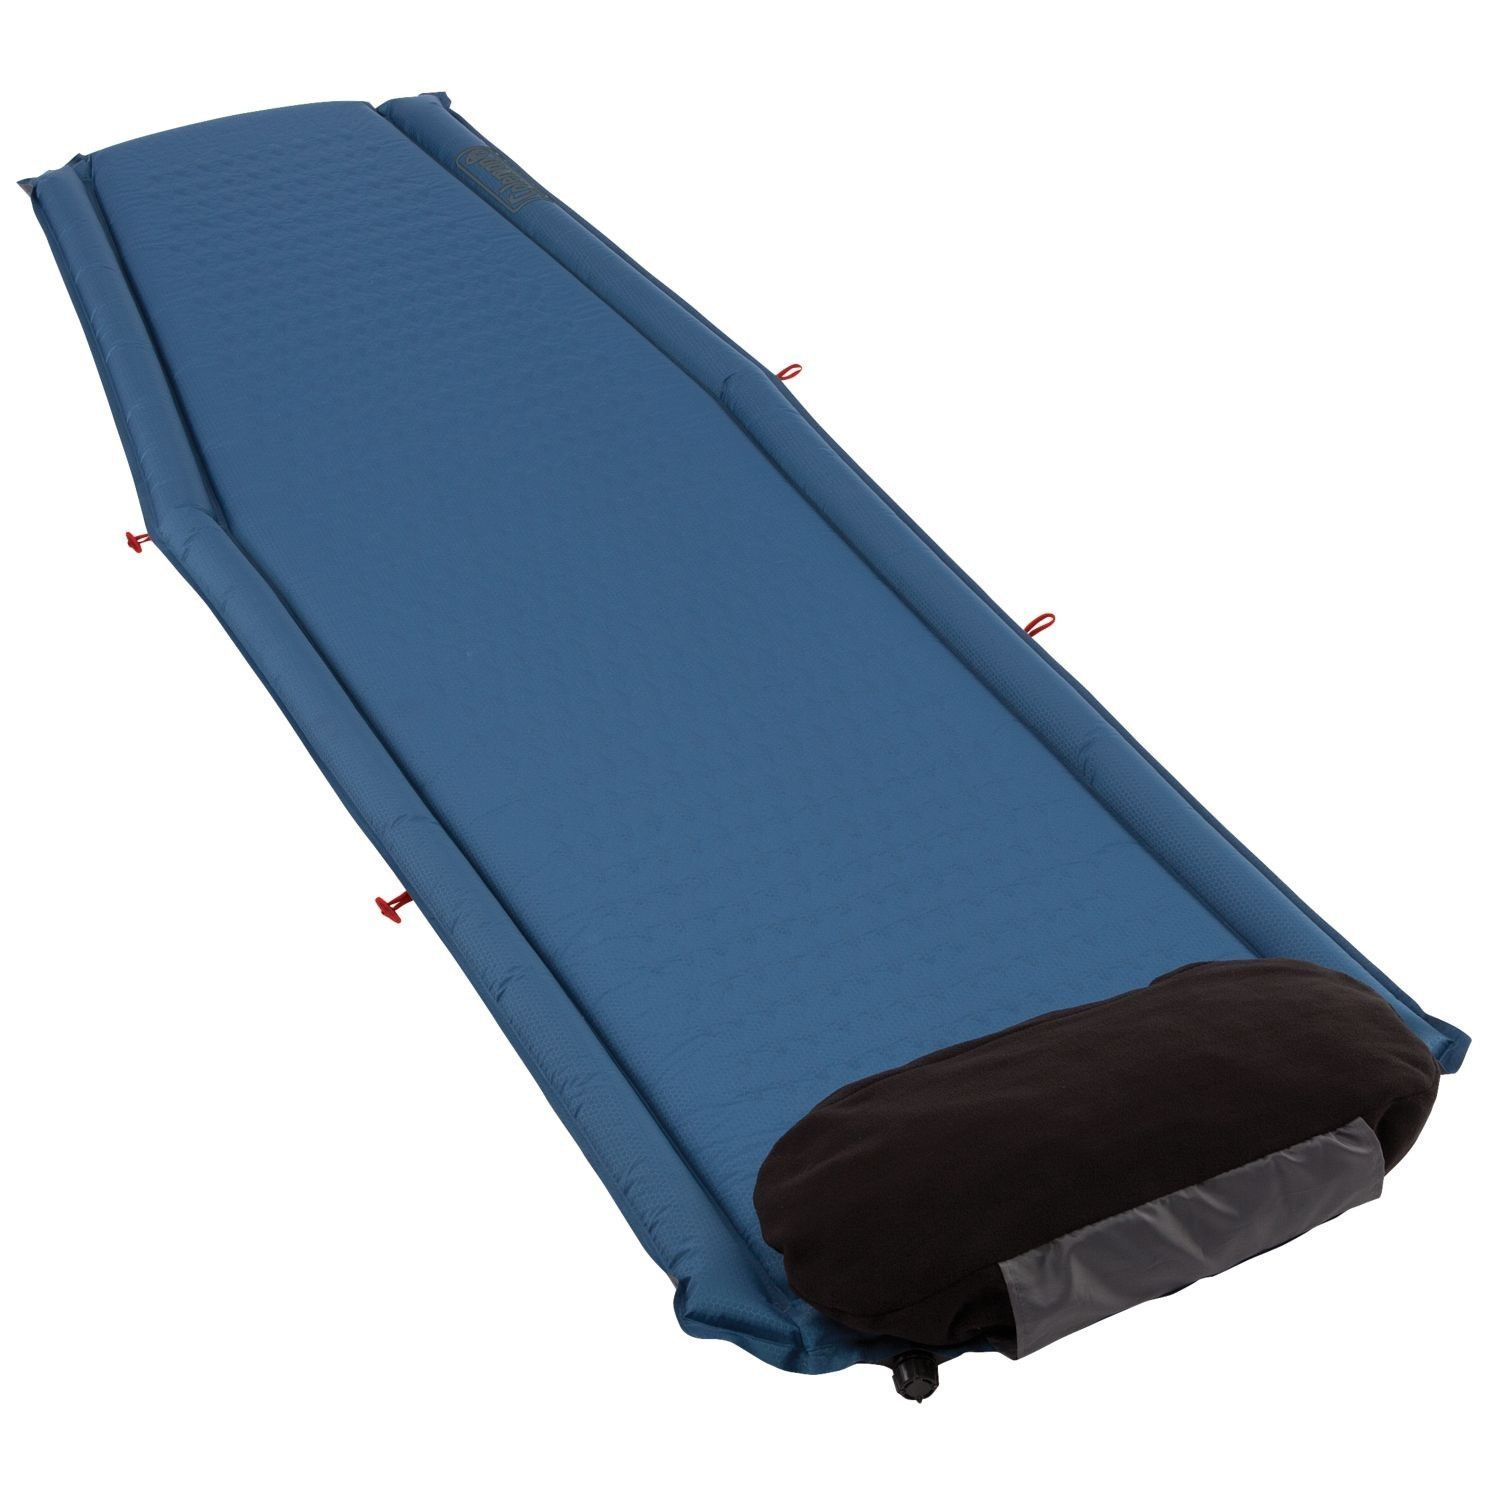 448db1df081 Coleman Silverton Tall Self Inflating Camp Pad 22x76x1.5